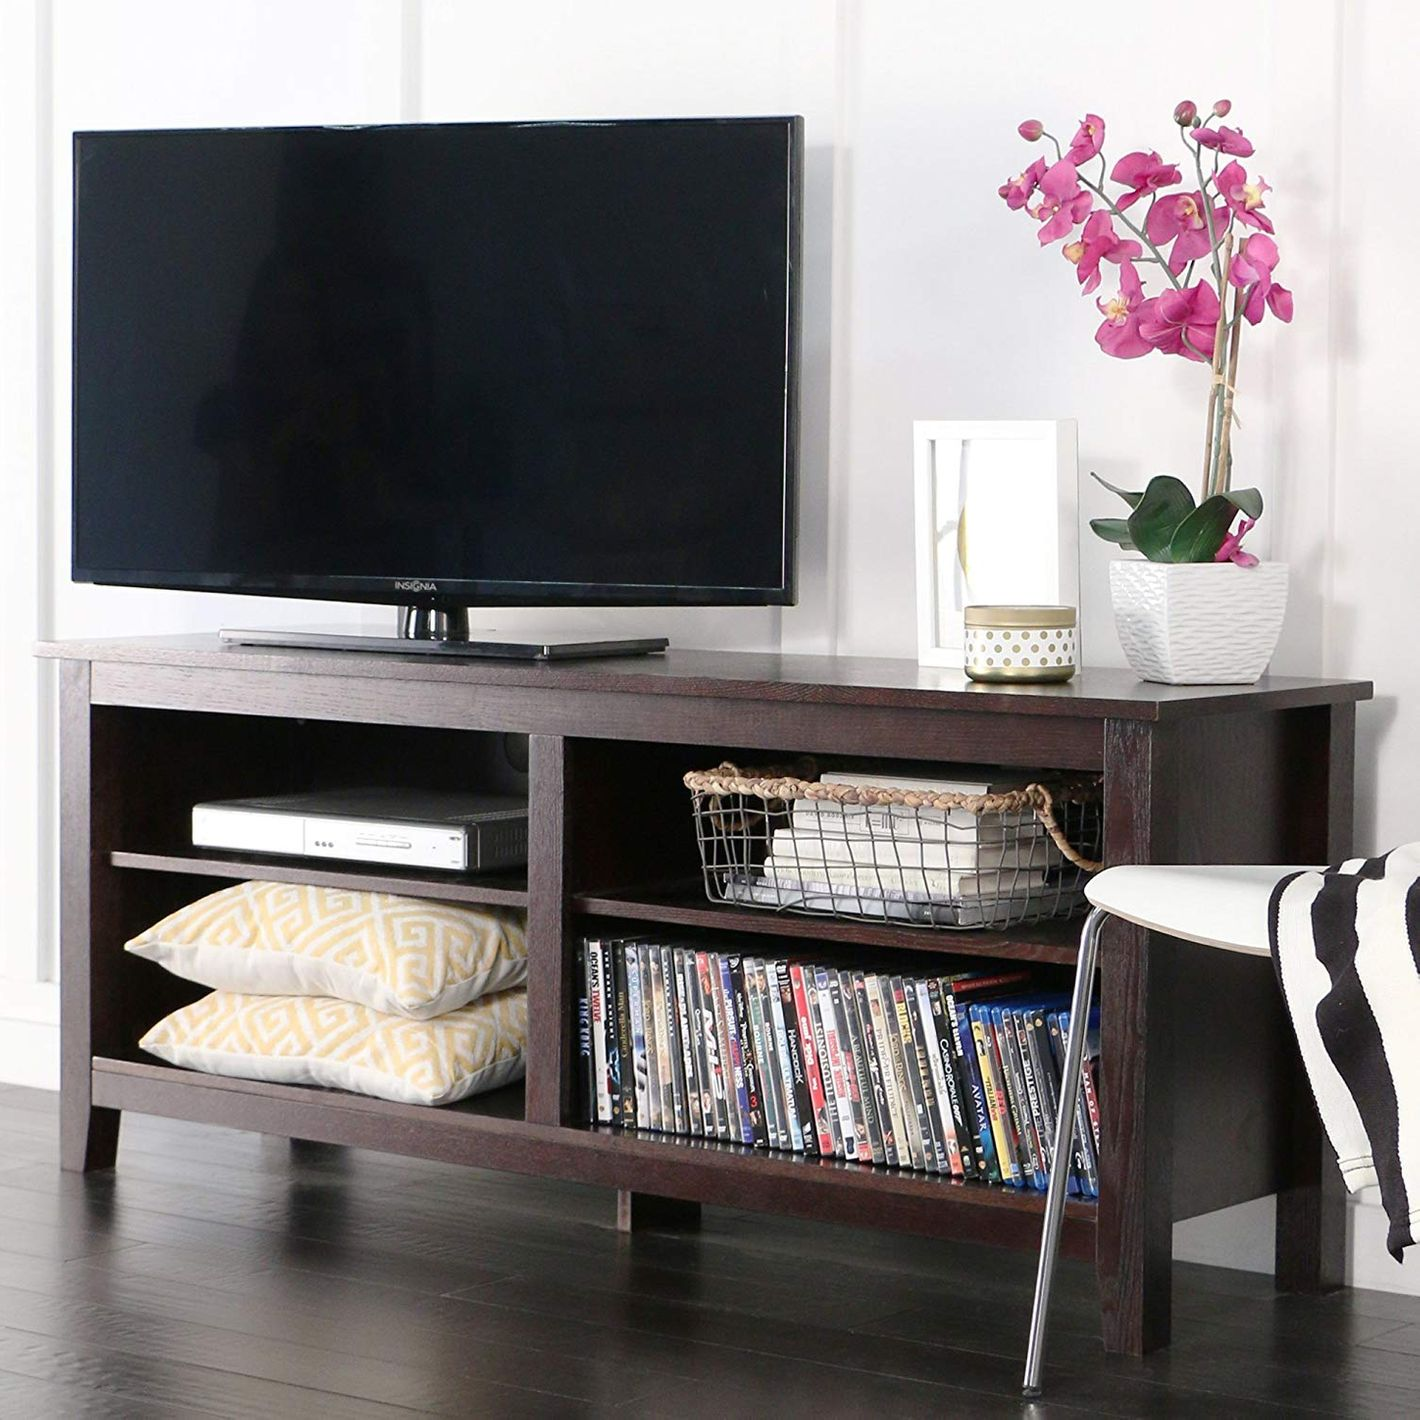 WE Furniture Classic Wood TV Stand 58-Inch Espresso